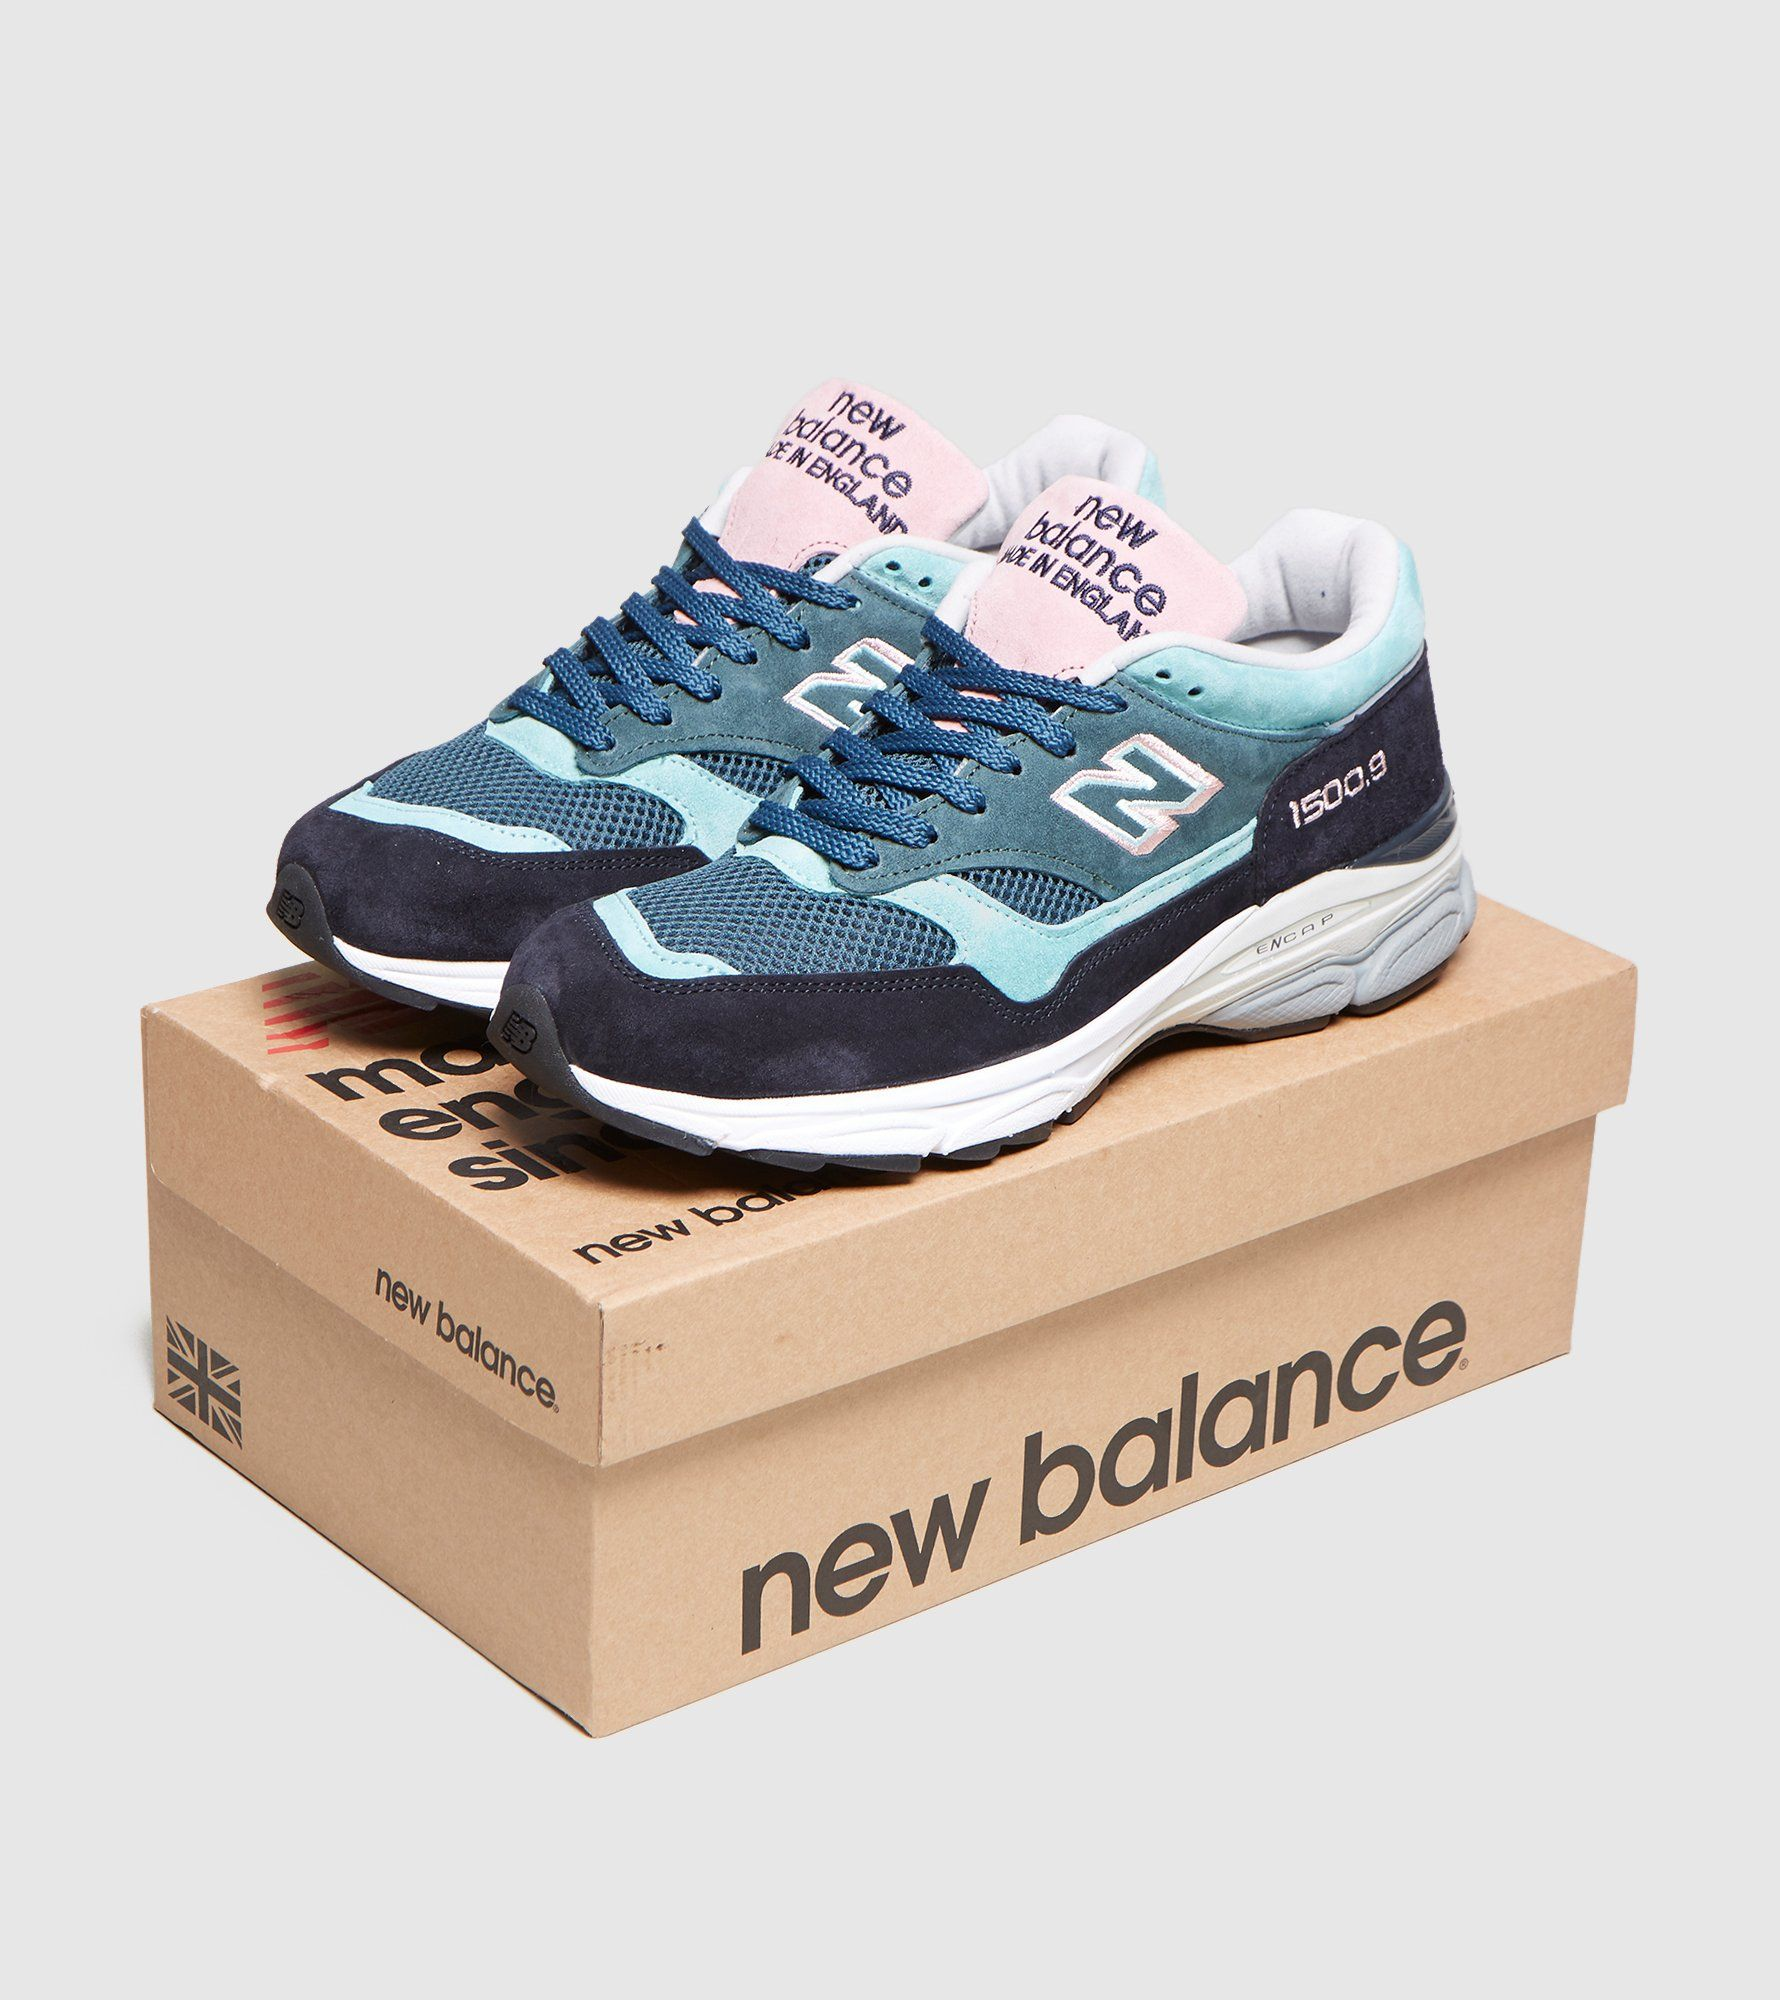 New Balance 15009 - Made in England